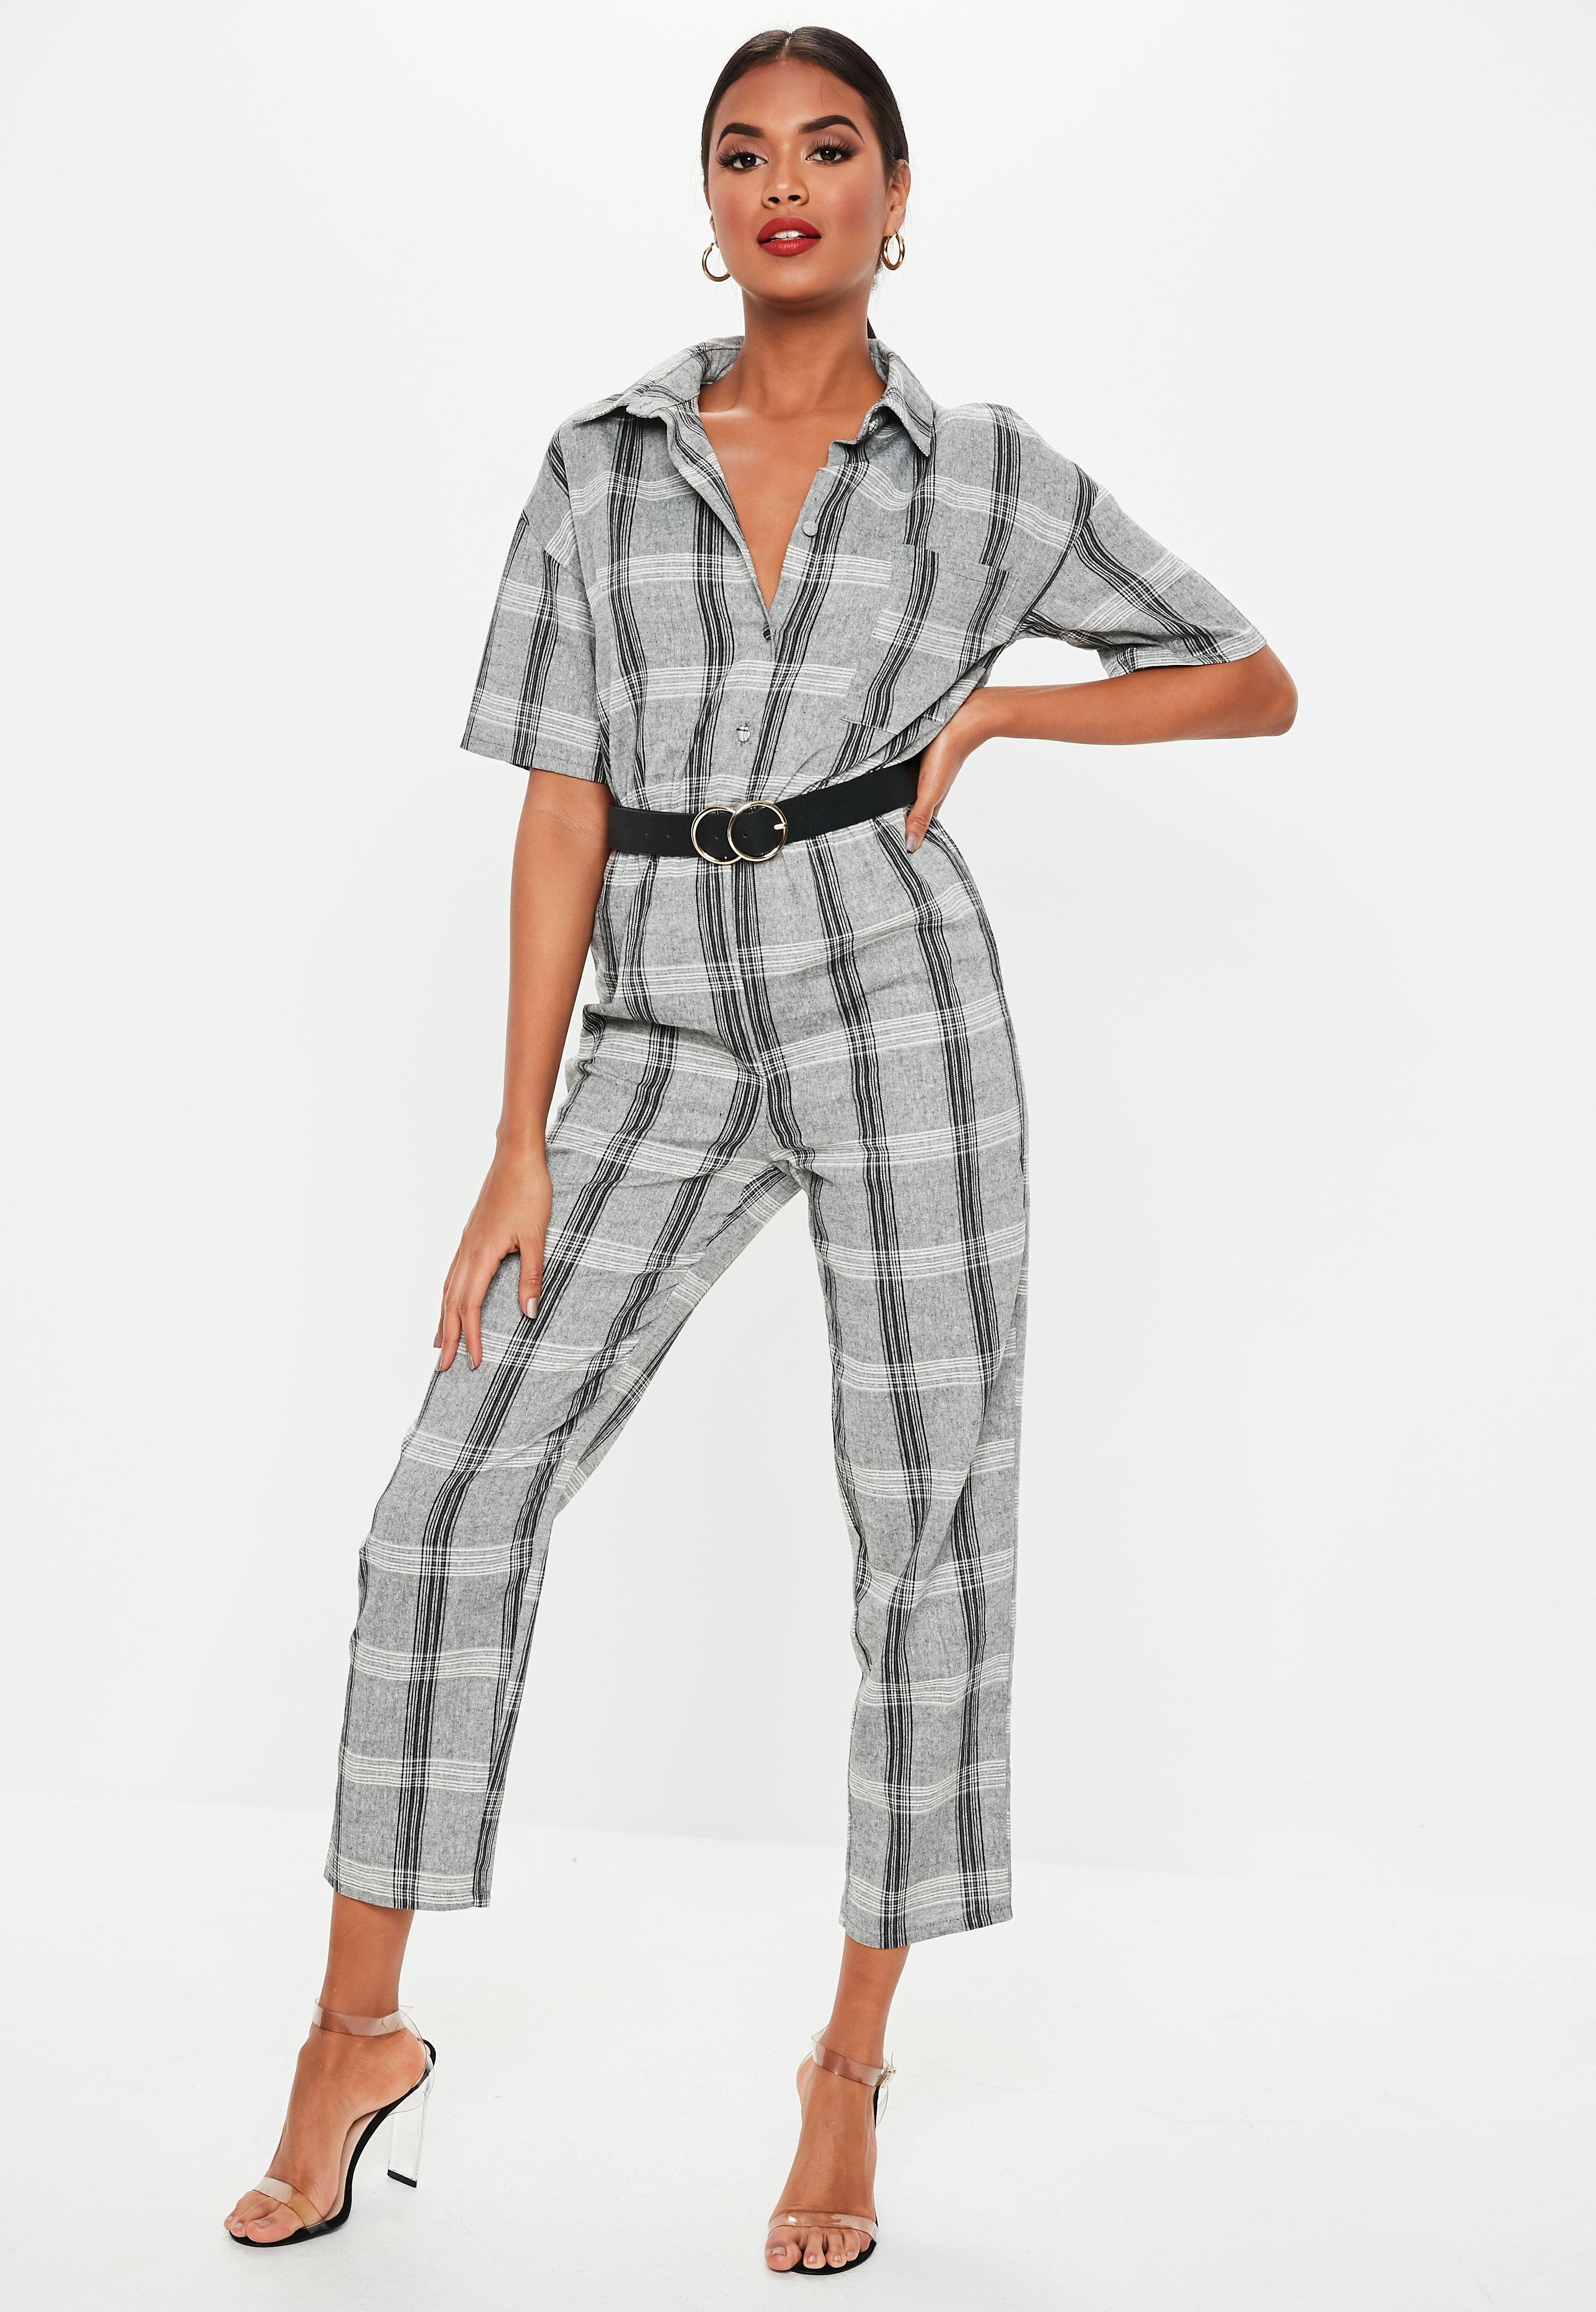 65d2c01cc186 Lyst - Missguided Grey Check Print Short Sleeve Jumpsuit in Gray